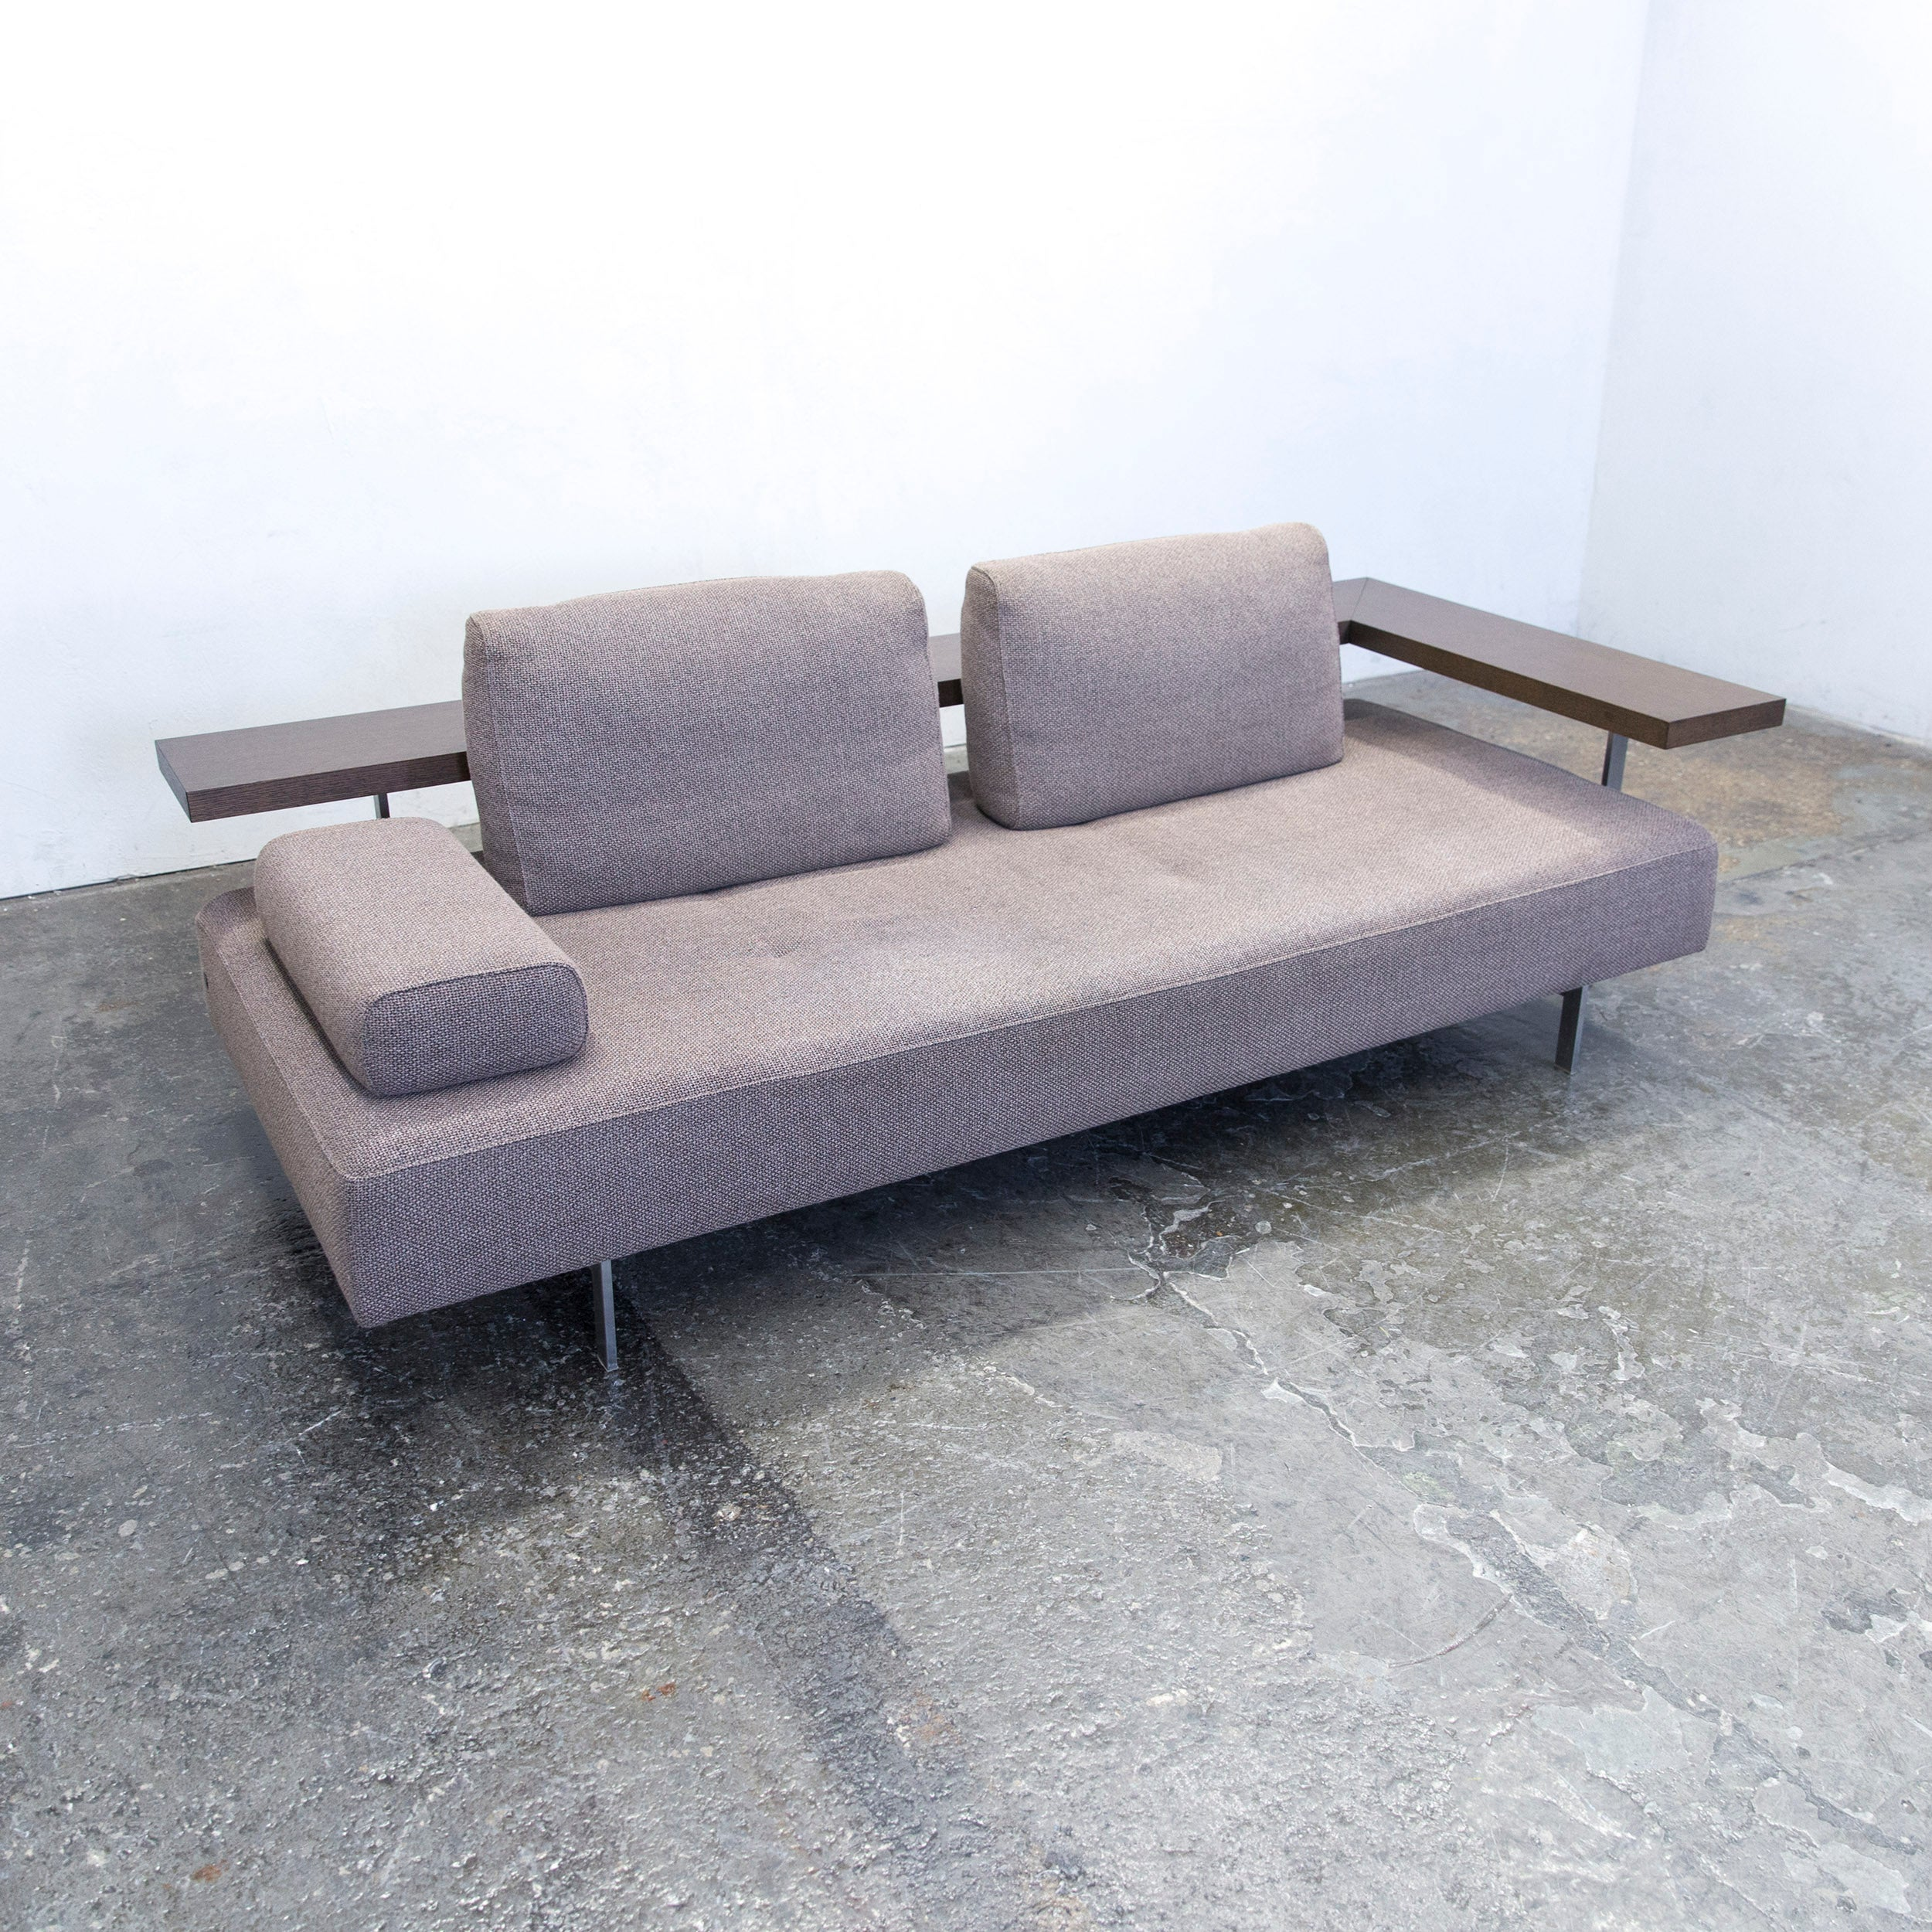 Rolf Benz Dono 6100 Designer Sofa Set Grey Fabric Two Seat Couch